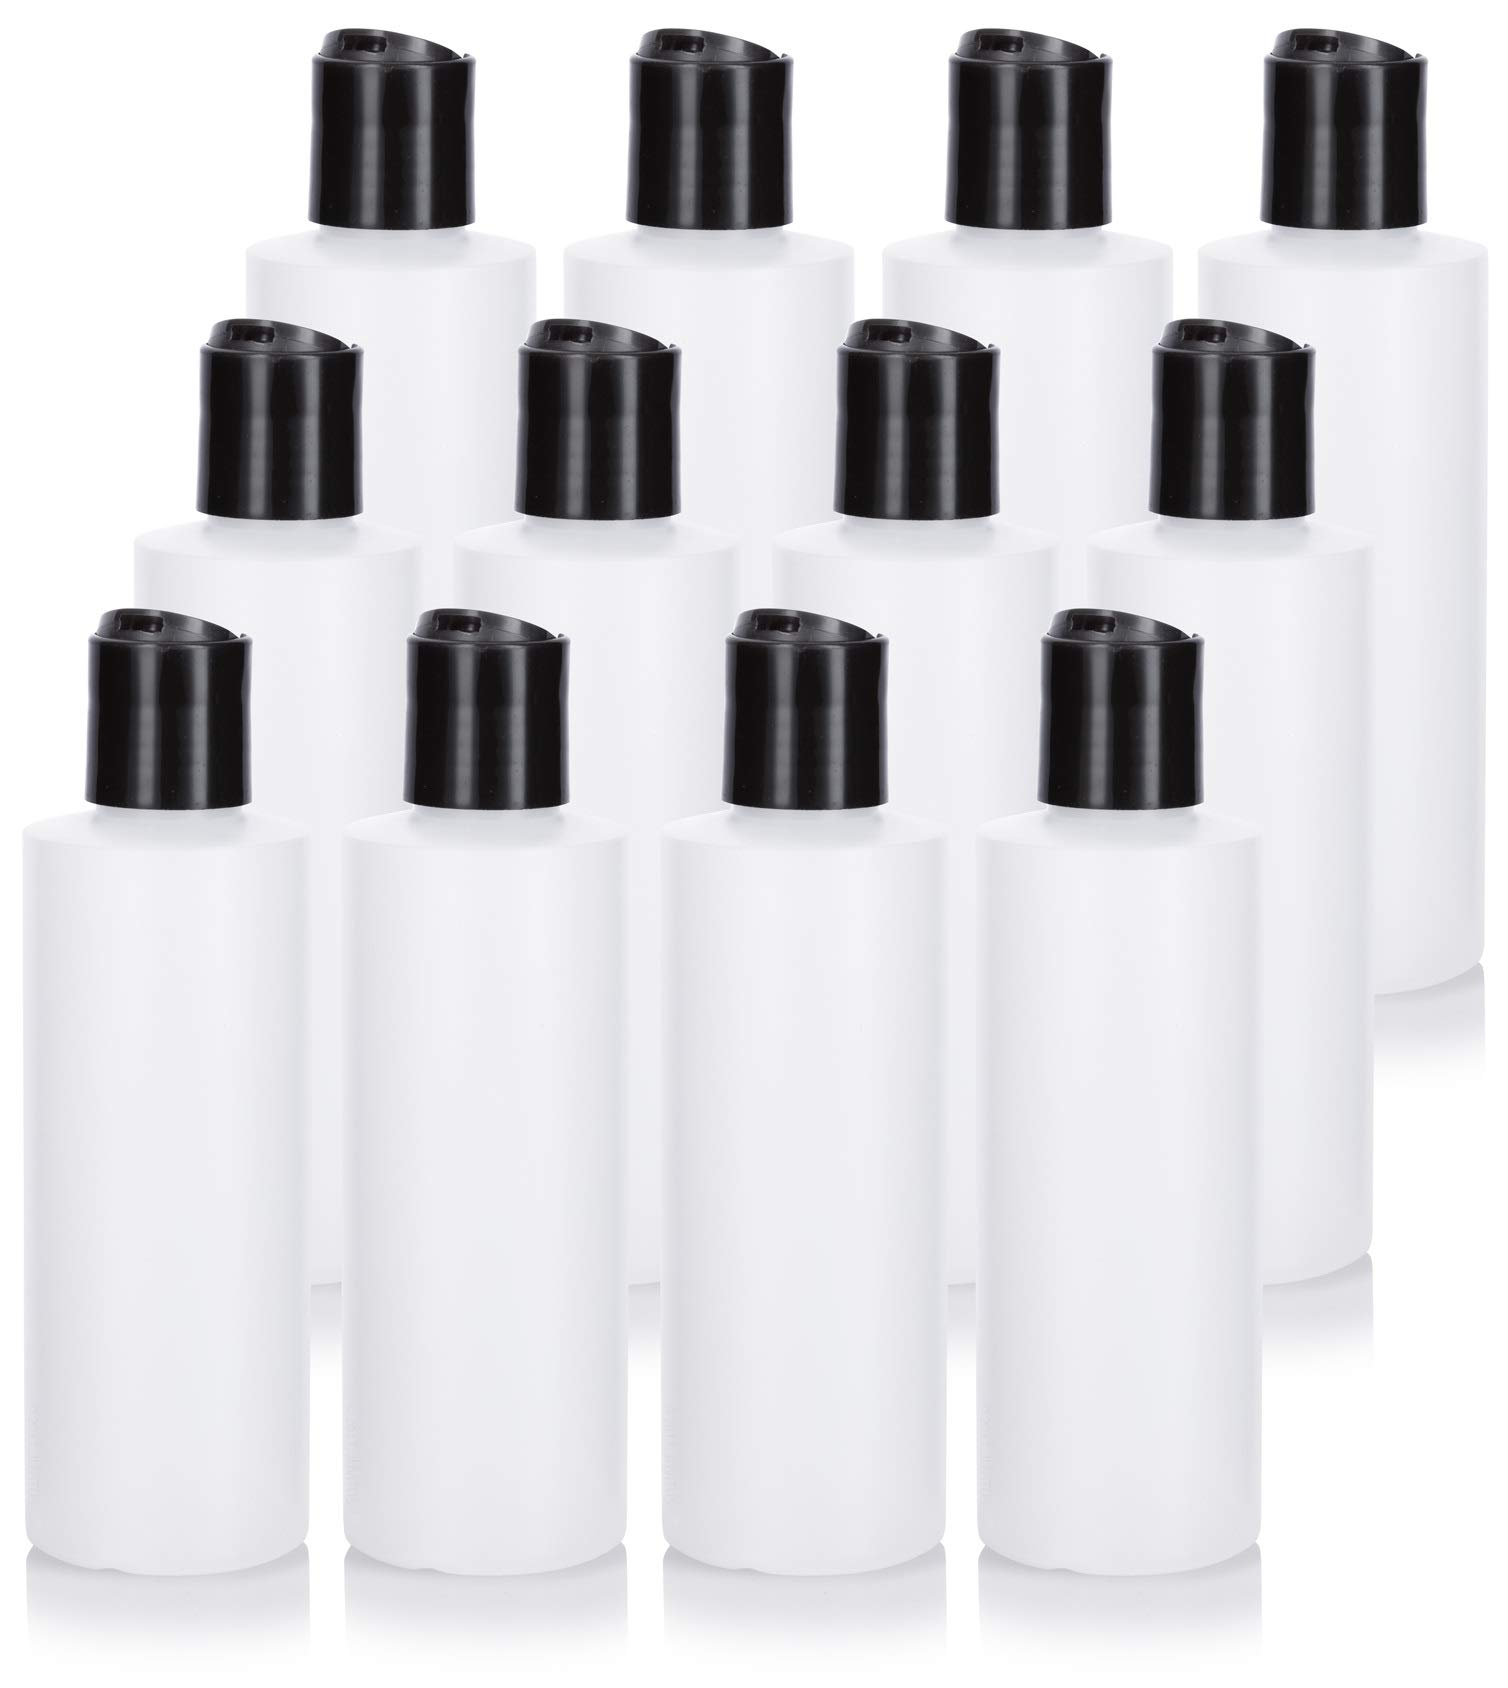 6 oz Clear Natural Refillable Plastic Squeeze Bottle with Black Disc Cap - (12 Pack)